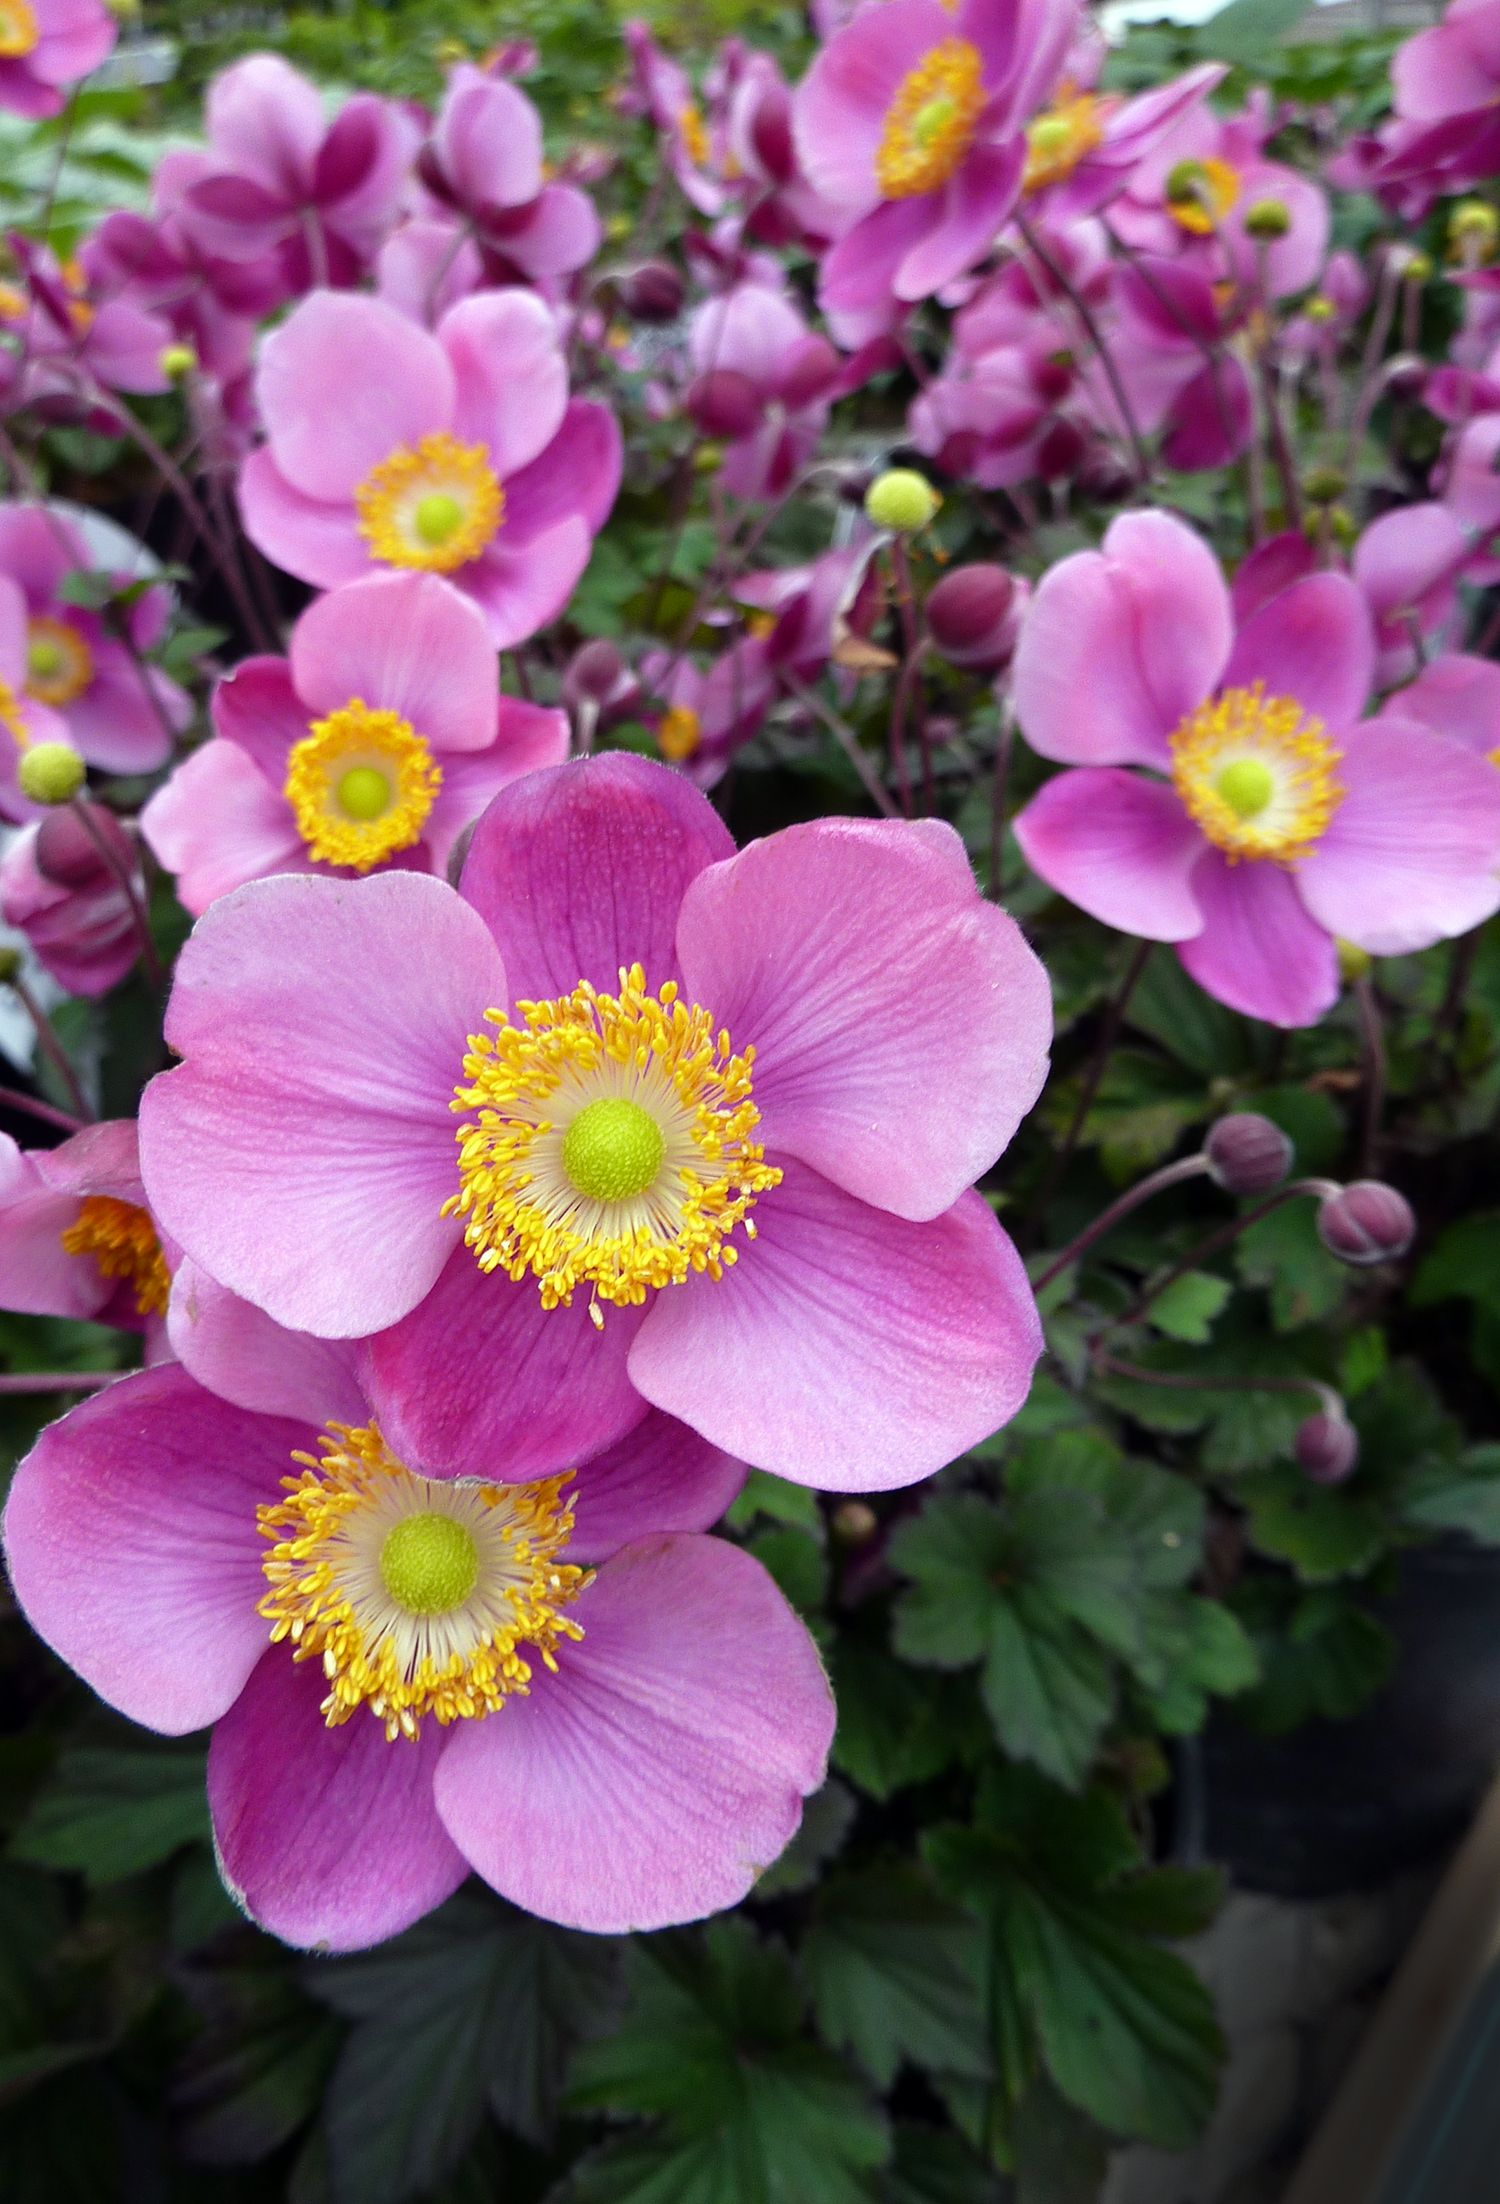 These Long Stemmed Lucky Charm Japanese Anemones Offer Gorgeous Violet Pink Flowers That Sit Atop New Foliage And Stems That Are Violet Tinted Pretty In The Pa